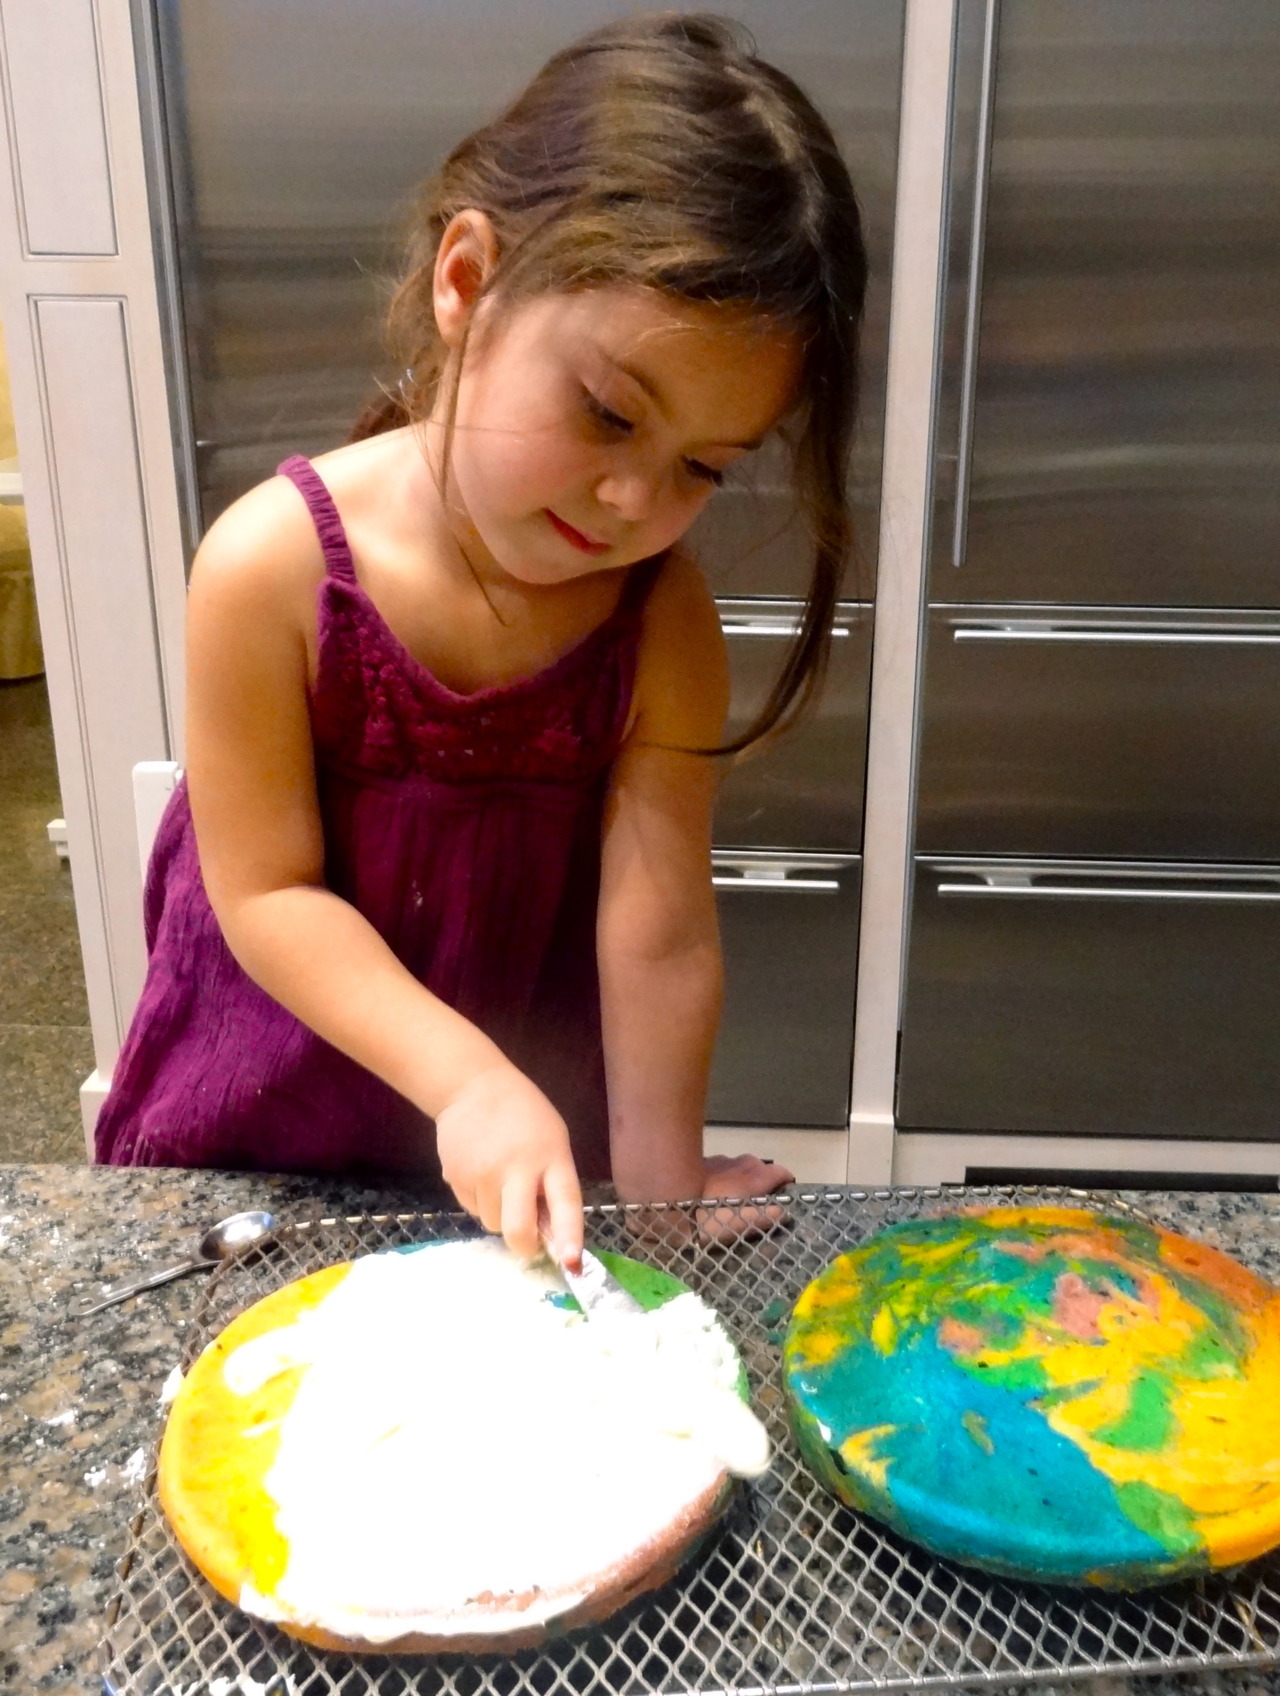 "Saturday may be St. Patrick's Day, but for me the important milestone that day is my grand daughter Nina's 5th birthday. She always asks me to bake a birthday cake for her and when she came to my house a few weeks ago we discussed what she would like and she told me ""a rainbow cake with vanilla."" Which is what we made for practice, just to see if that's what she really wanted. We were able to have all these good colors thanks to several squirts of food coloring, which I added to small bowls of yellow cake batter and let Nina mix.  Here she is frosting her practice cake with a cream-cheese frosting. Her real birthday cake will have the same frosting plus an Ariel, Little Mermaid design on the top. And a Little Mermaid Candle. Of course. Cream Cheese Frosting for Yellow Cake Cream Cheese Frosting: 3/4 cup butter at room temperature 12 ounces cream cheese at room temperature 1-1/2 cups confectioner's sugar 1-2 teaspoons vanilla extract Beat the butter, cream cheese and confectioner's sugar together until smooth and creamy. Add 1-2 teaspoons vanilla extract, enough to make the frosting easy to spread. Enough for one 9-inch layer cake"